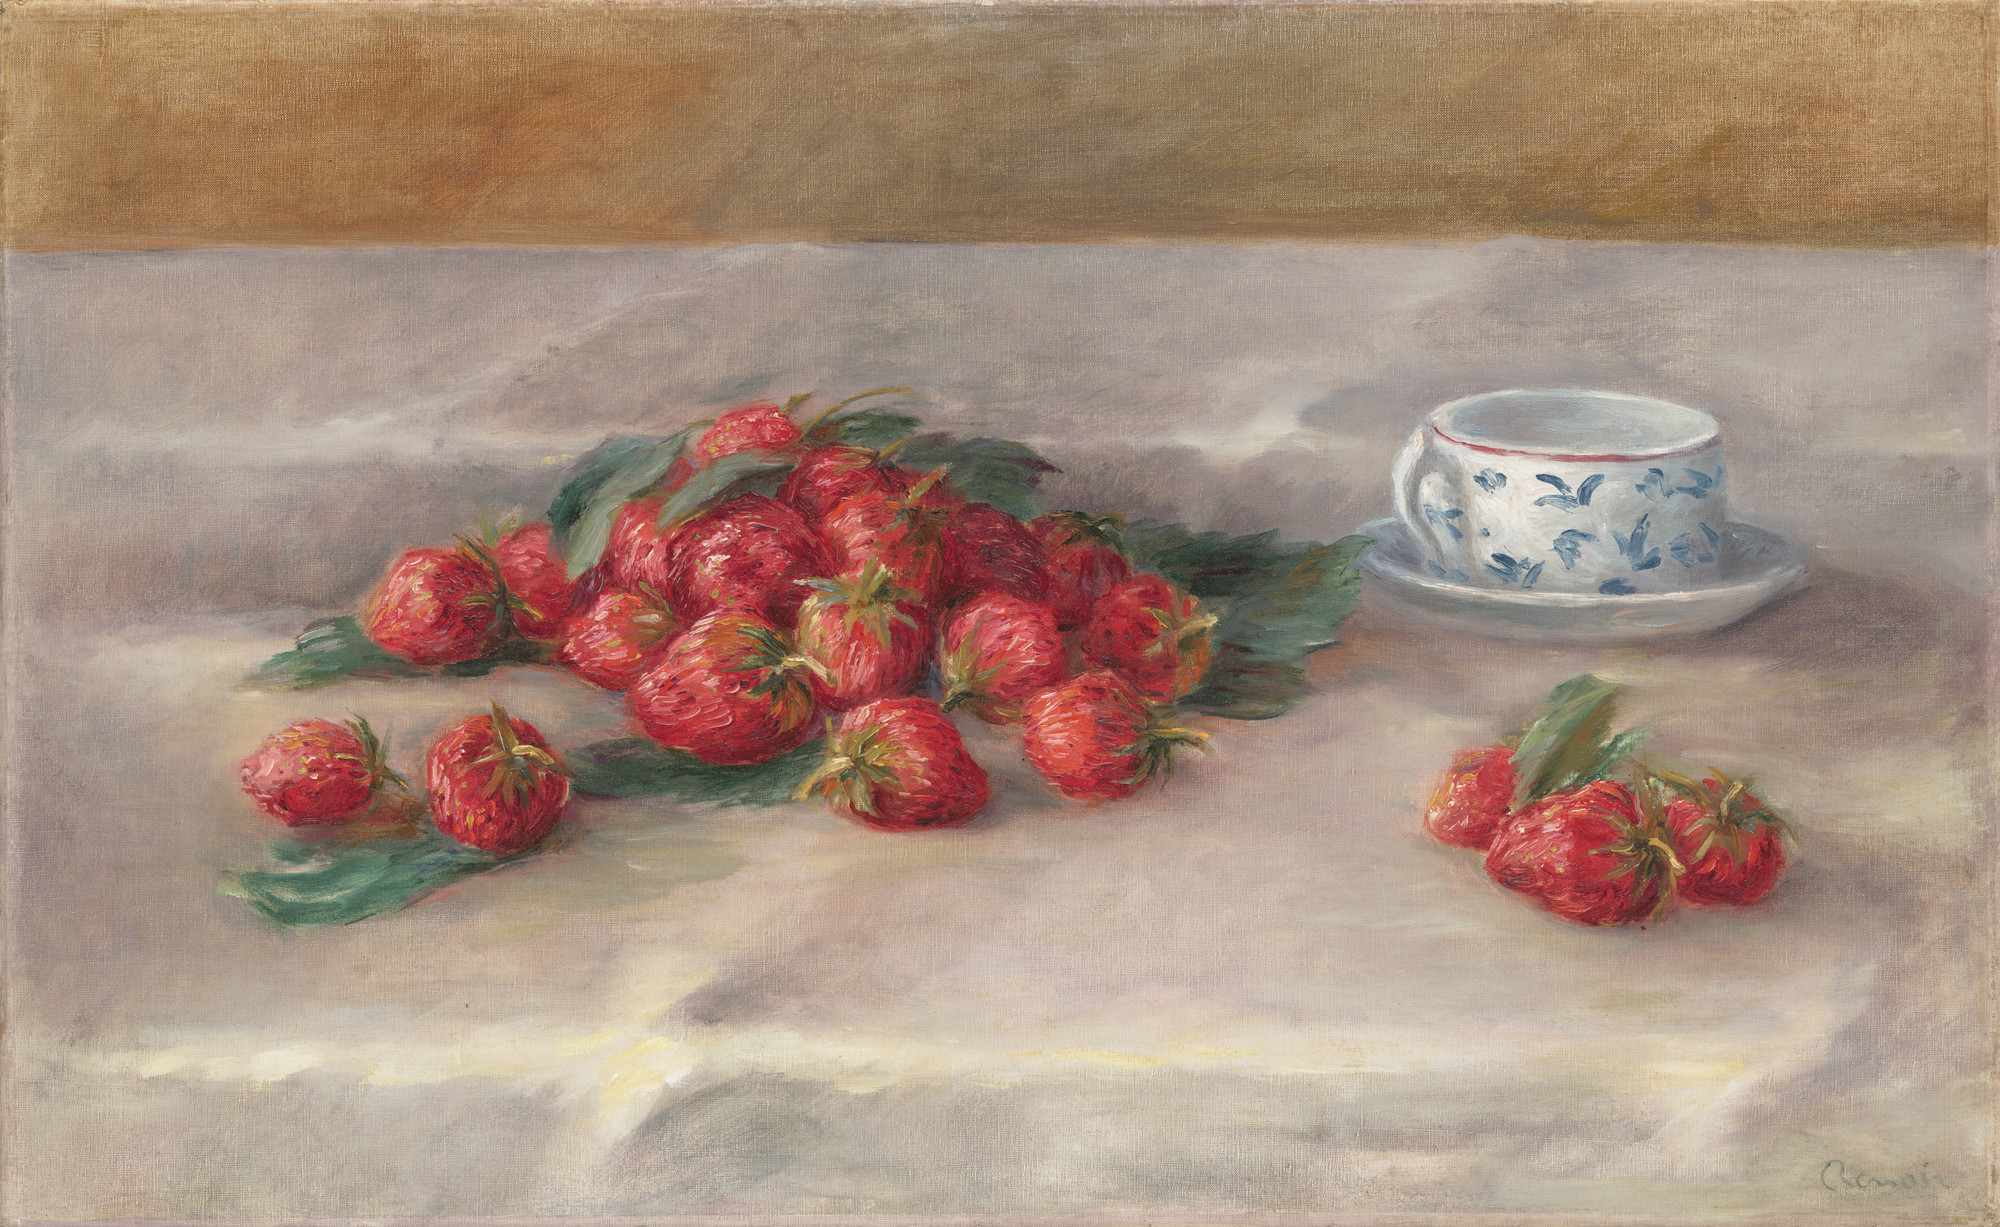 Pierre-Auguste Renoir. Strawberries. c. 1905